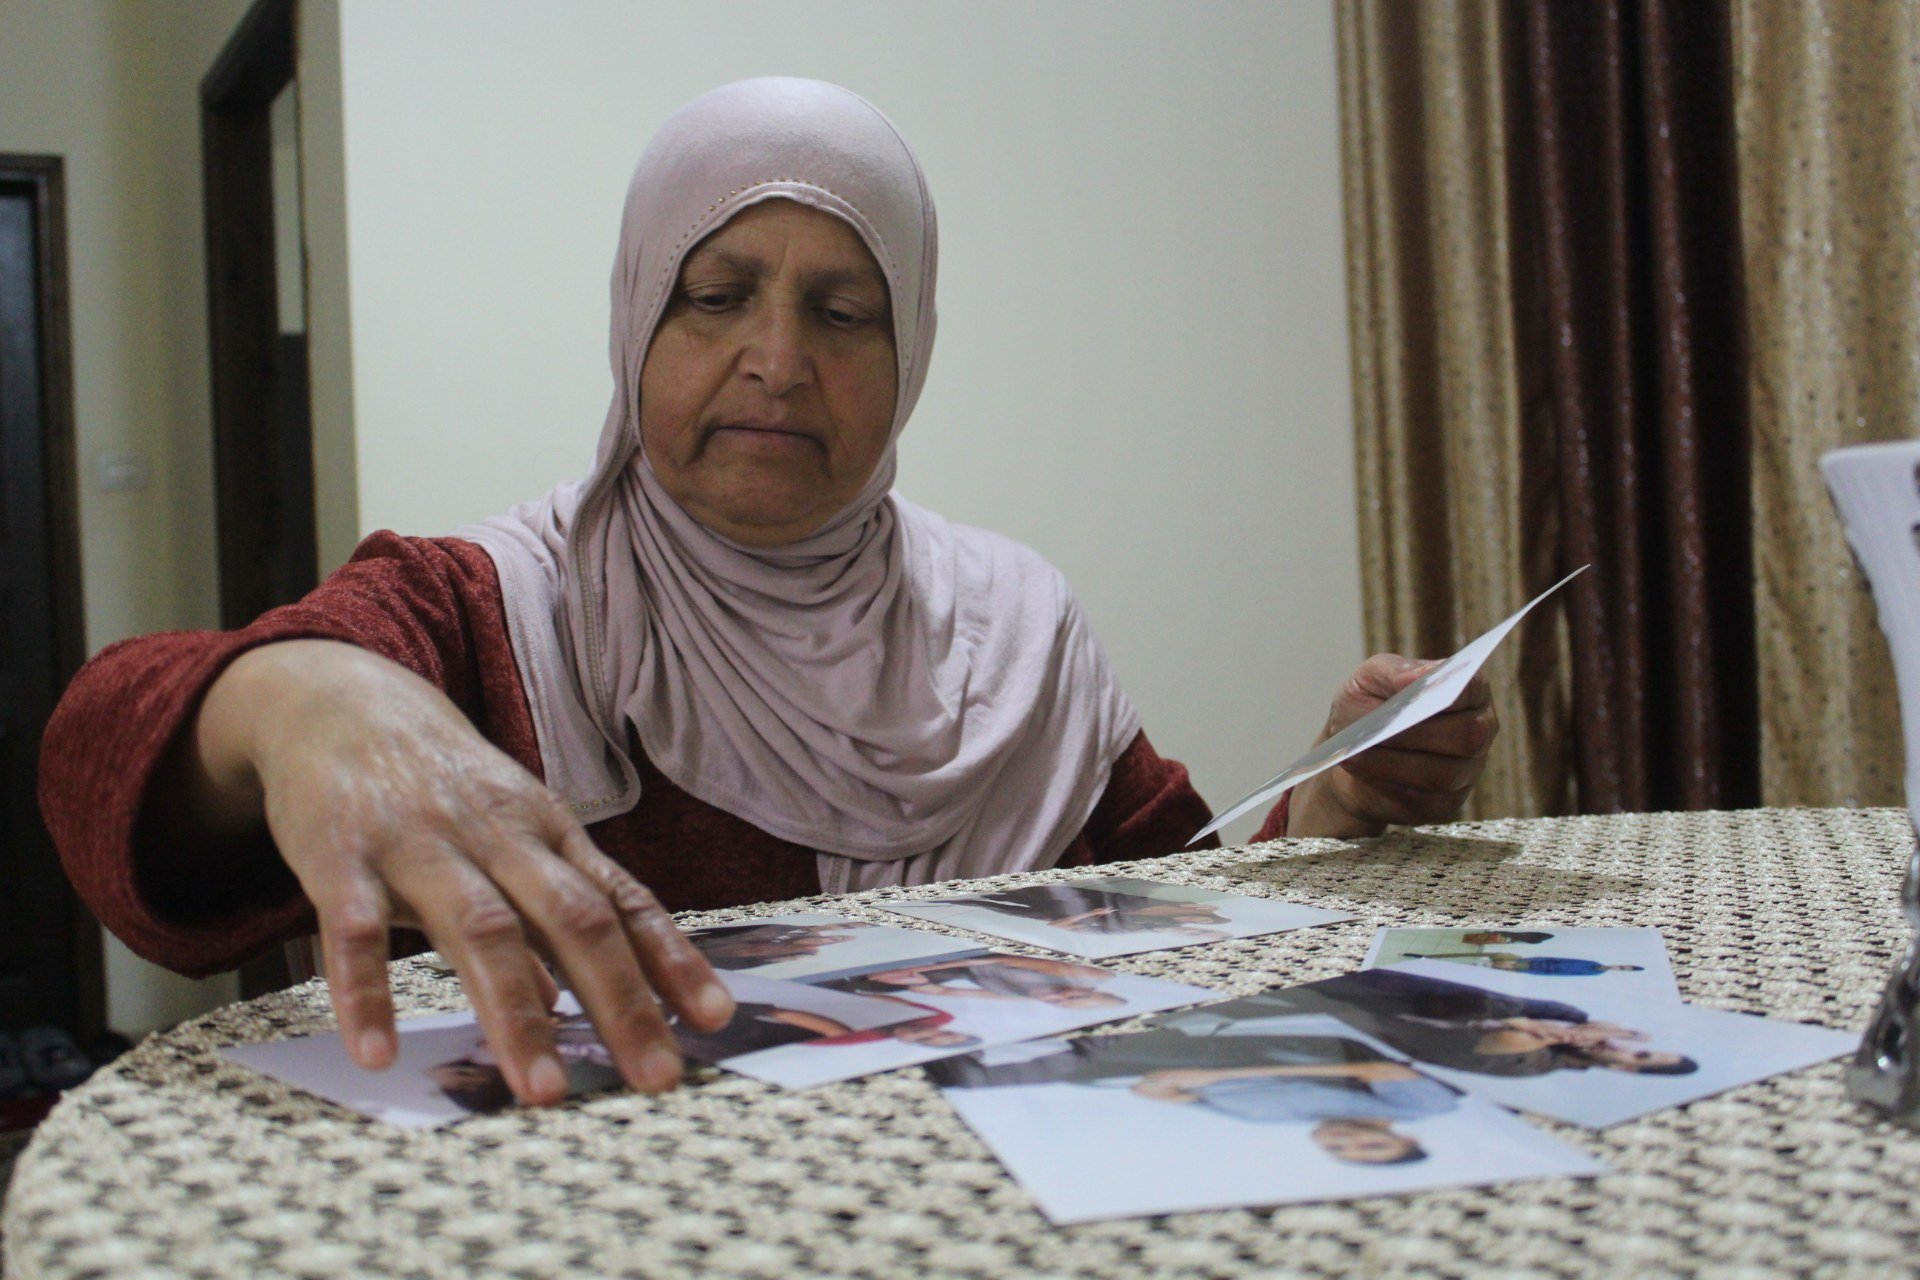 Zainab Hamed's son Ibrahim has the second-longest sentence in Israeli prisons (MEE/Shatha Hammad)